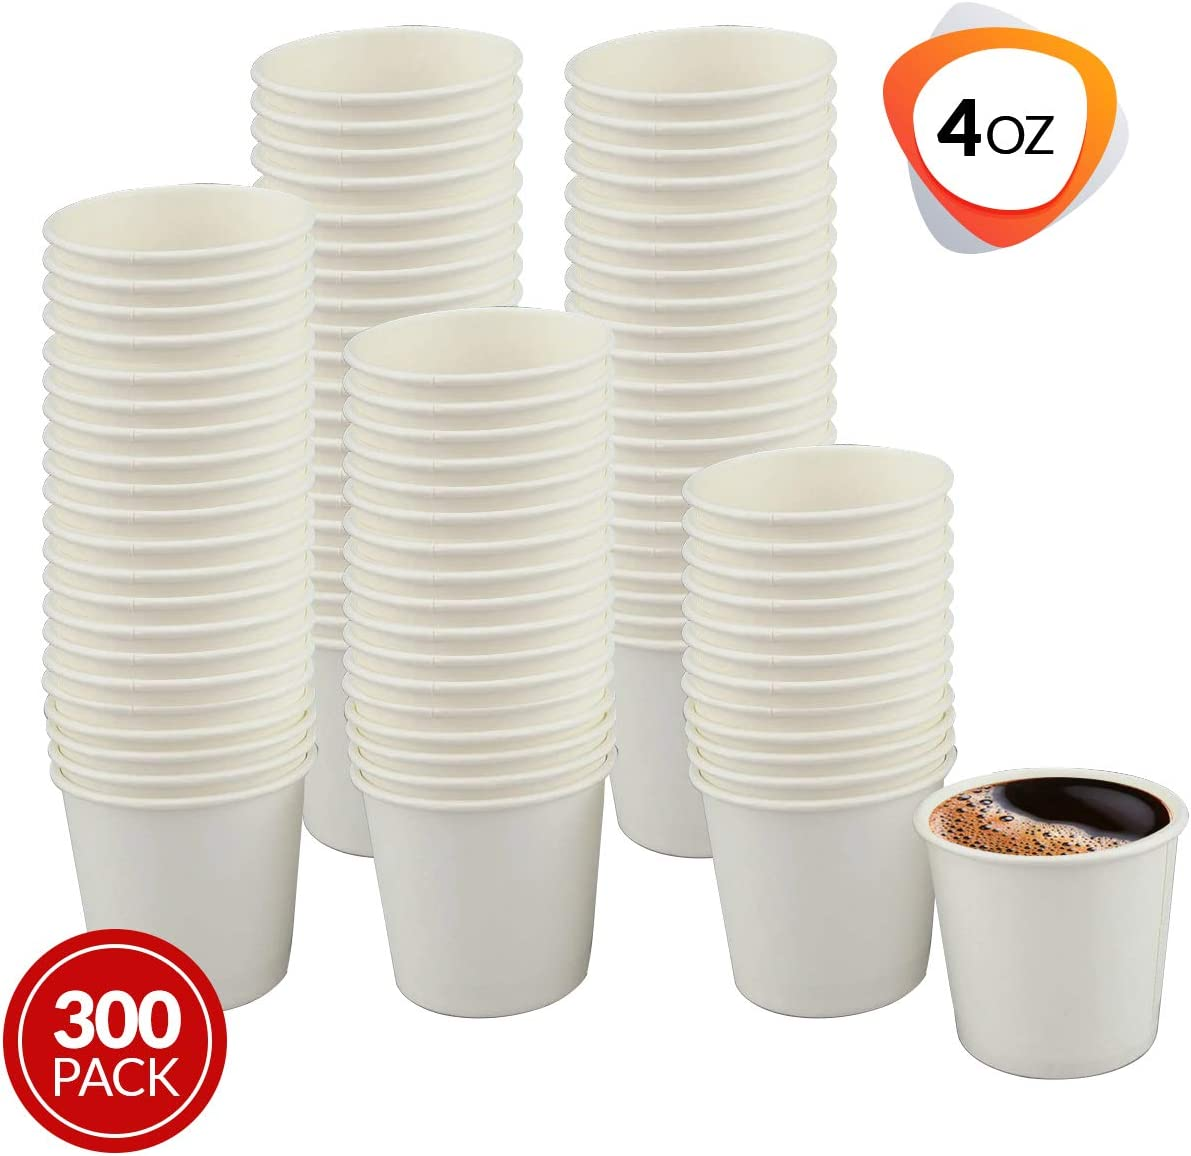 Netko White 4 Oz Paper Cups - Disposable Coffee Cups | Beverage Drinking Paper Glass for Water, Juice, Tea 300Pack